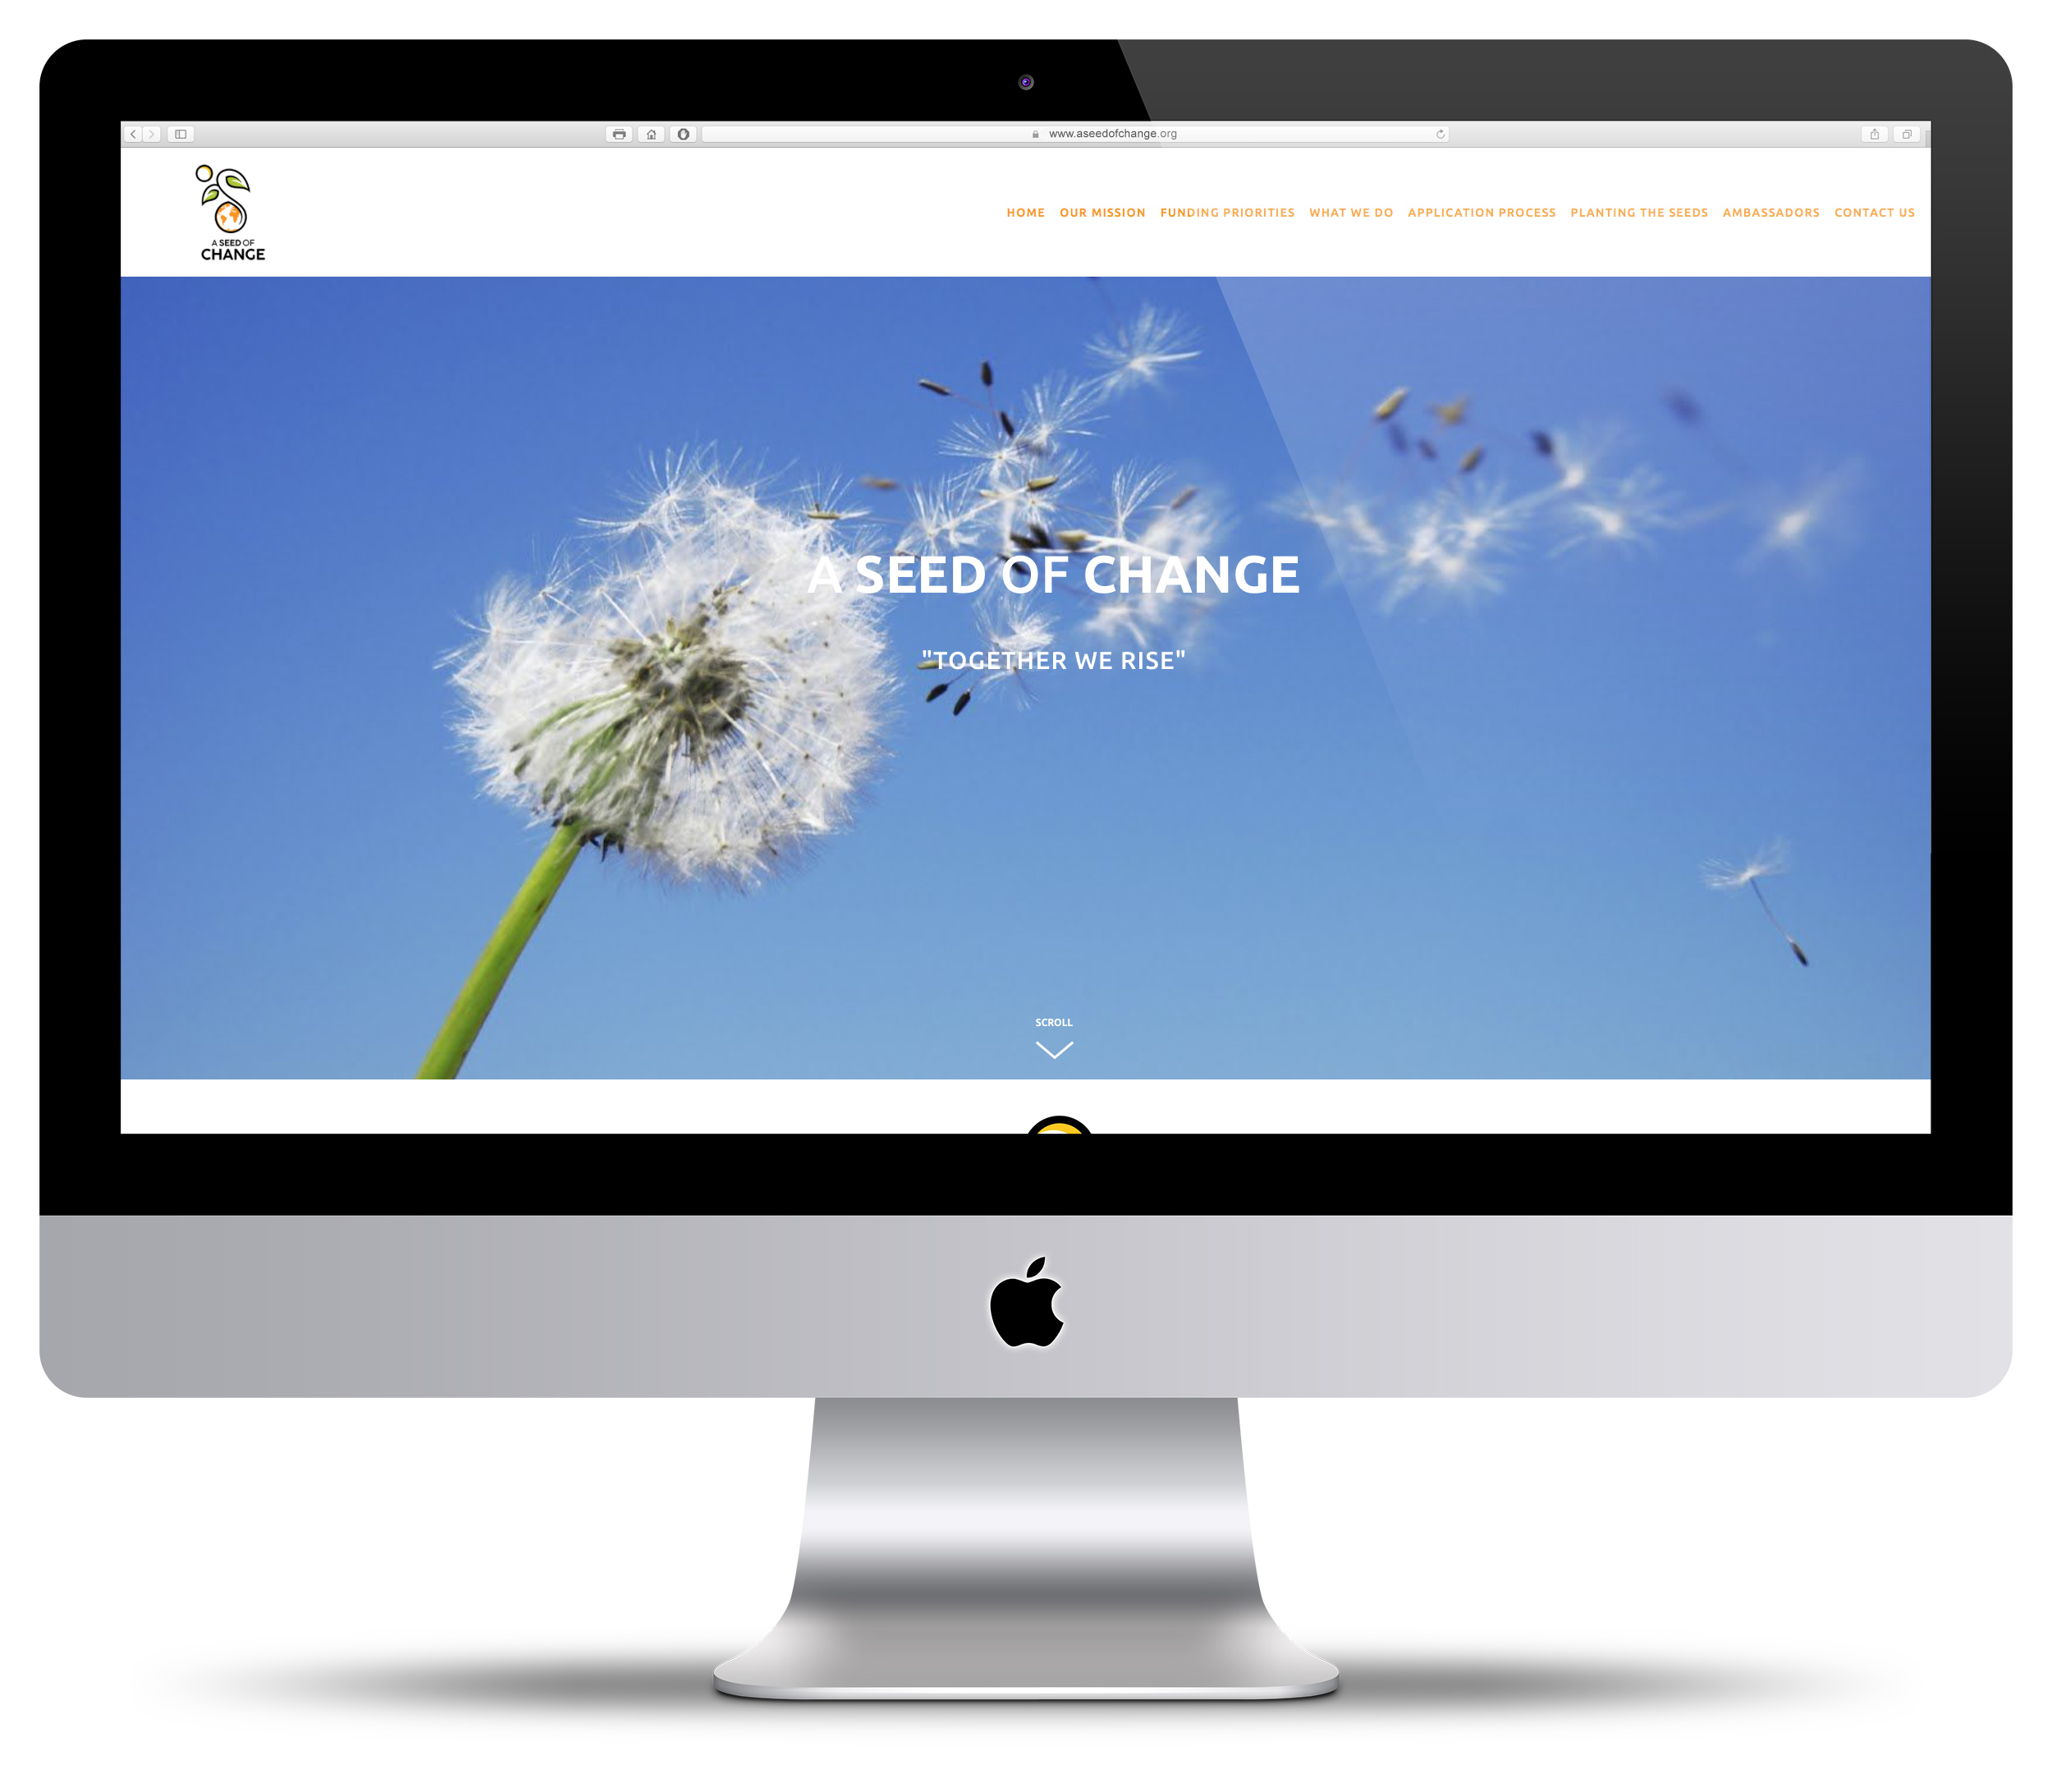 A_Seed_of_Change_monitor.jpg